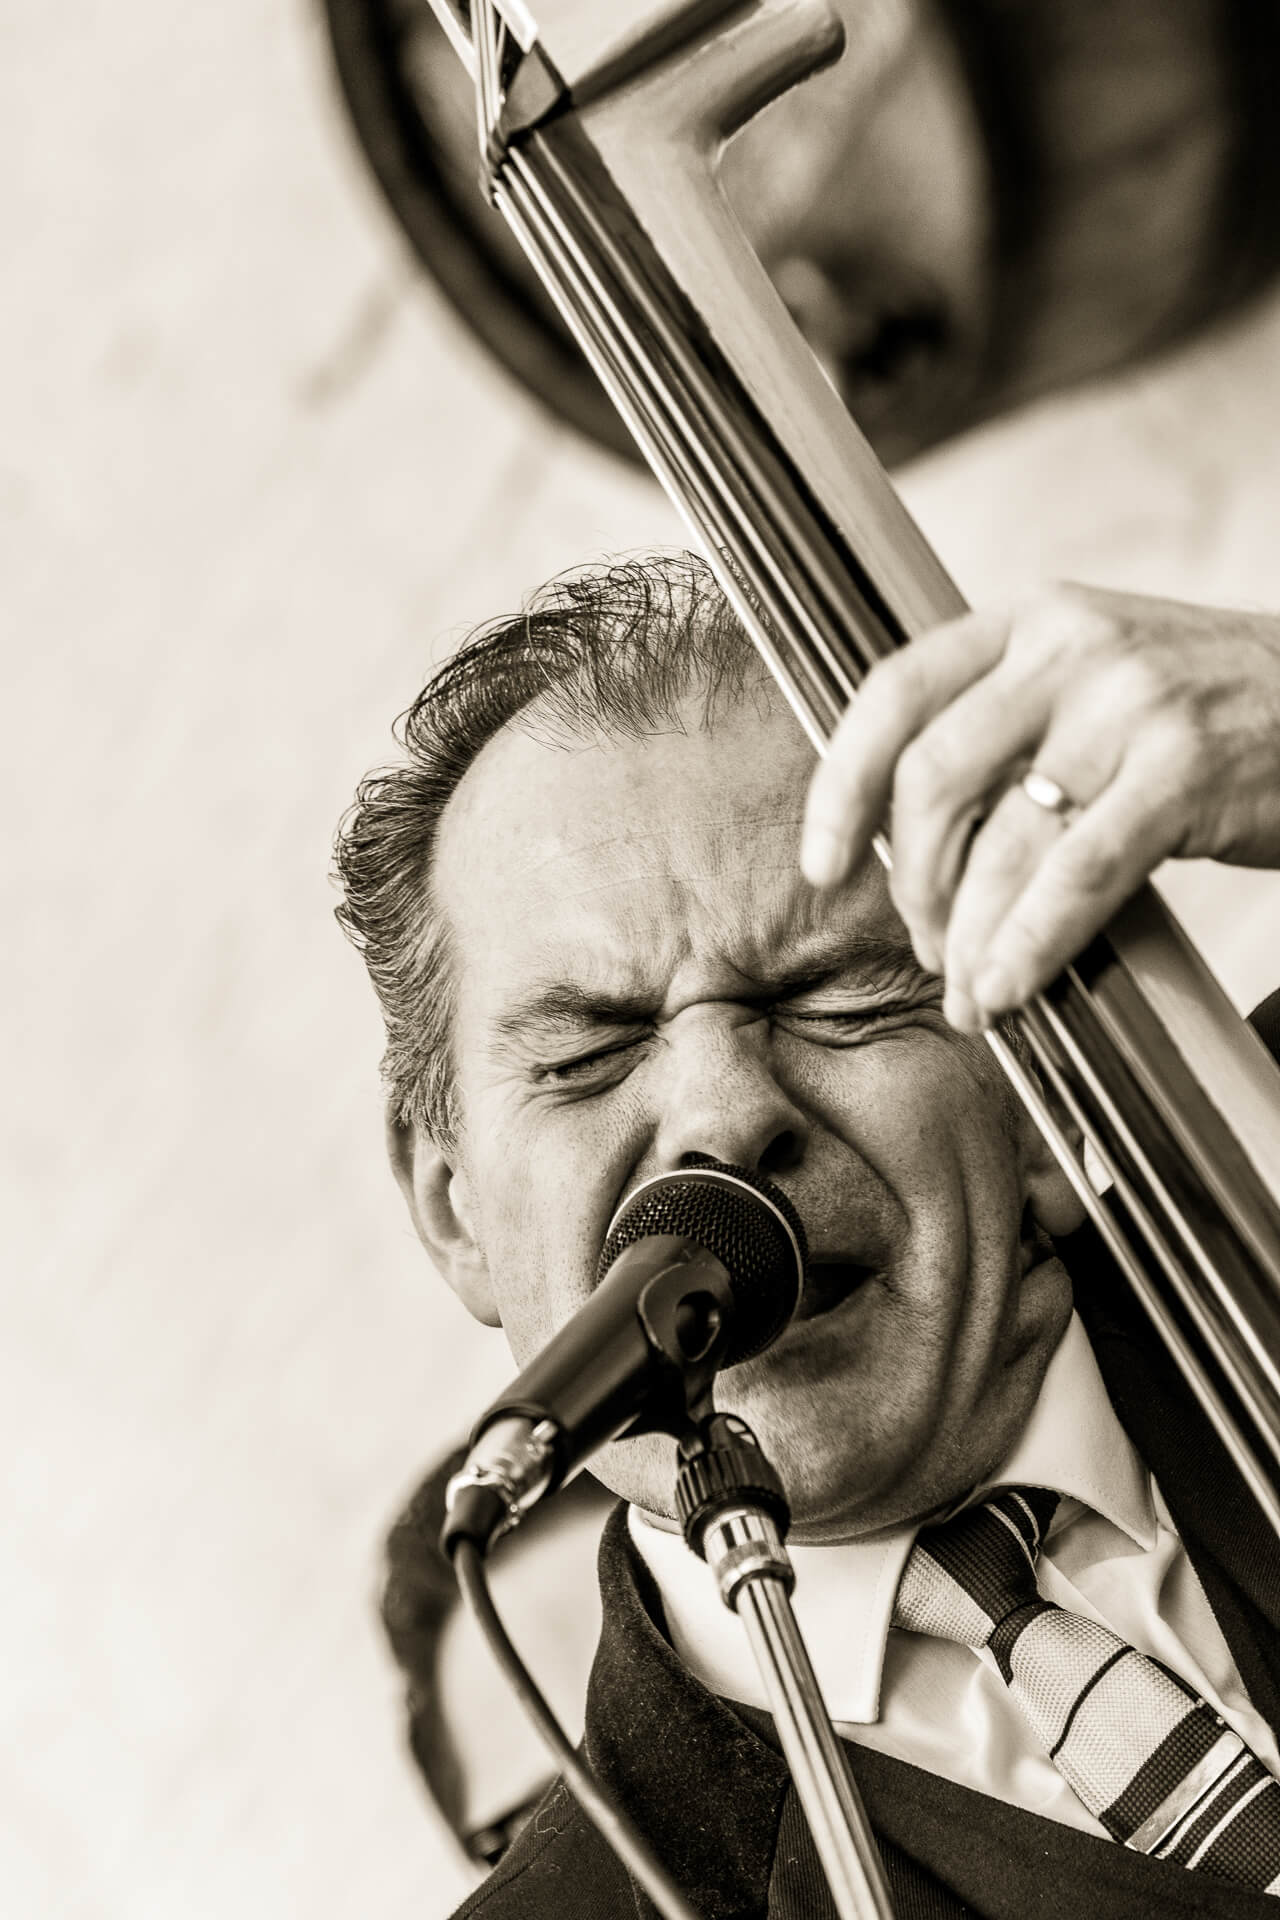 A head and shoulders shot of Martin, lead singer and double bass player of the UK Fireballs singing during a performance at the Worcester Music Festival 2018